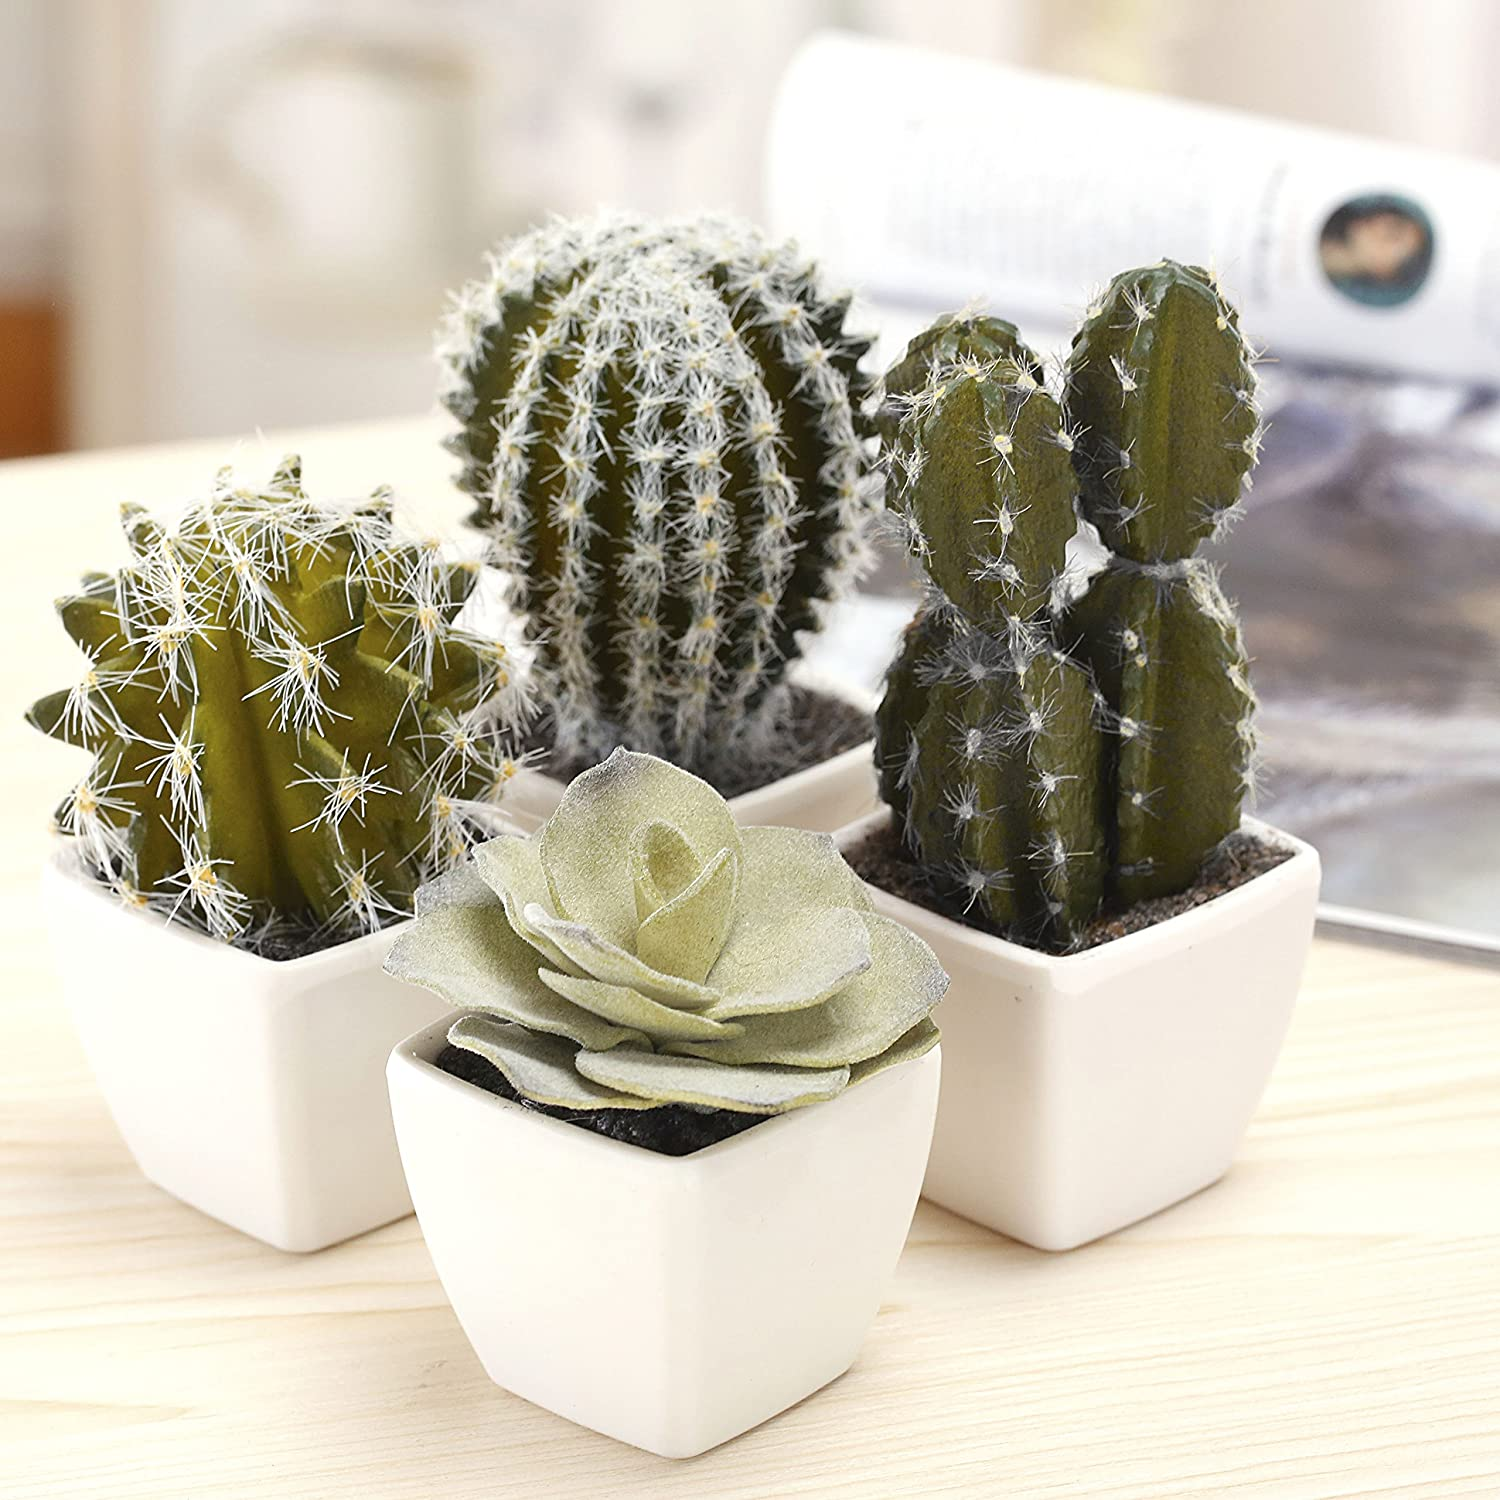 MyGift 5-Inch Mini Assorted Artificial Cactus Plants, Faux Cacti Assortment in Square White Pots, Set of 4